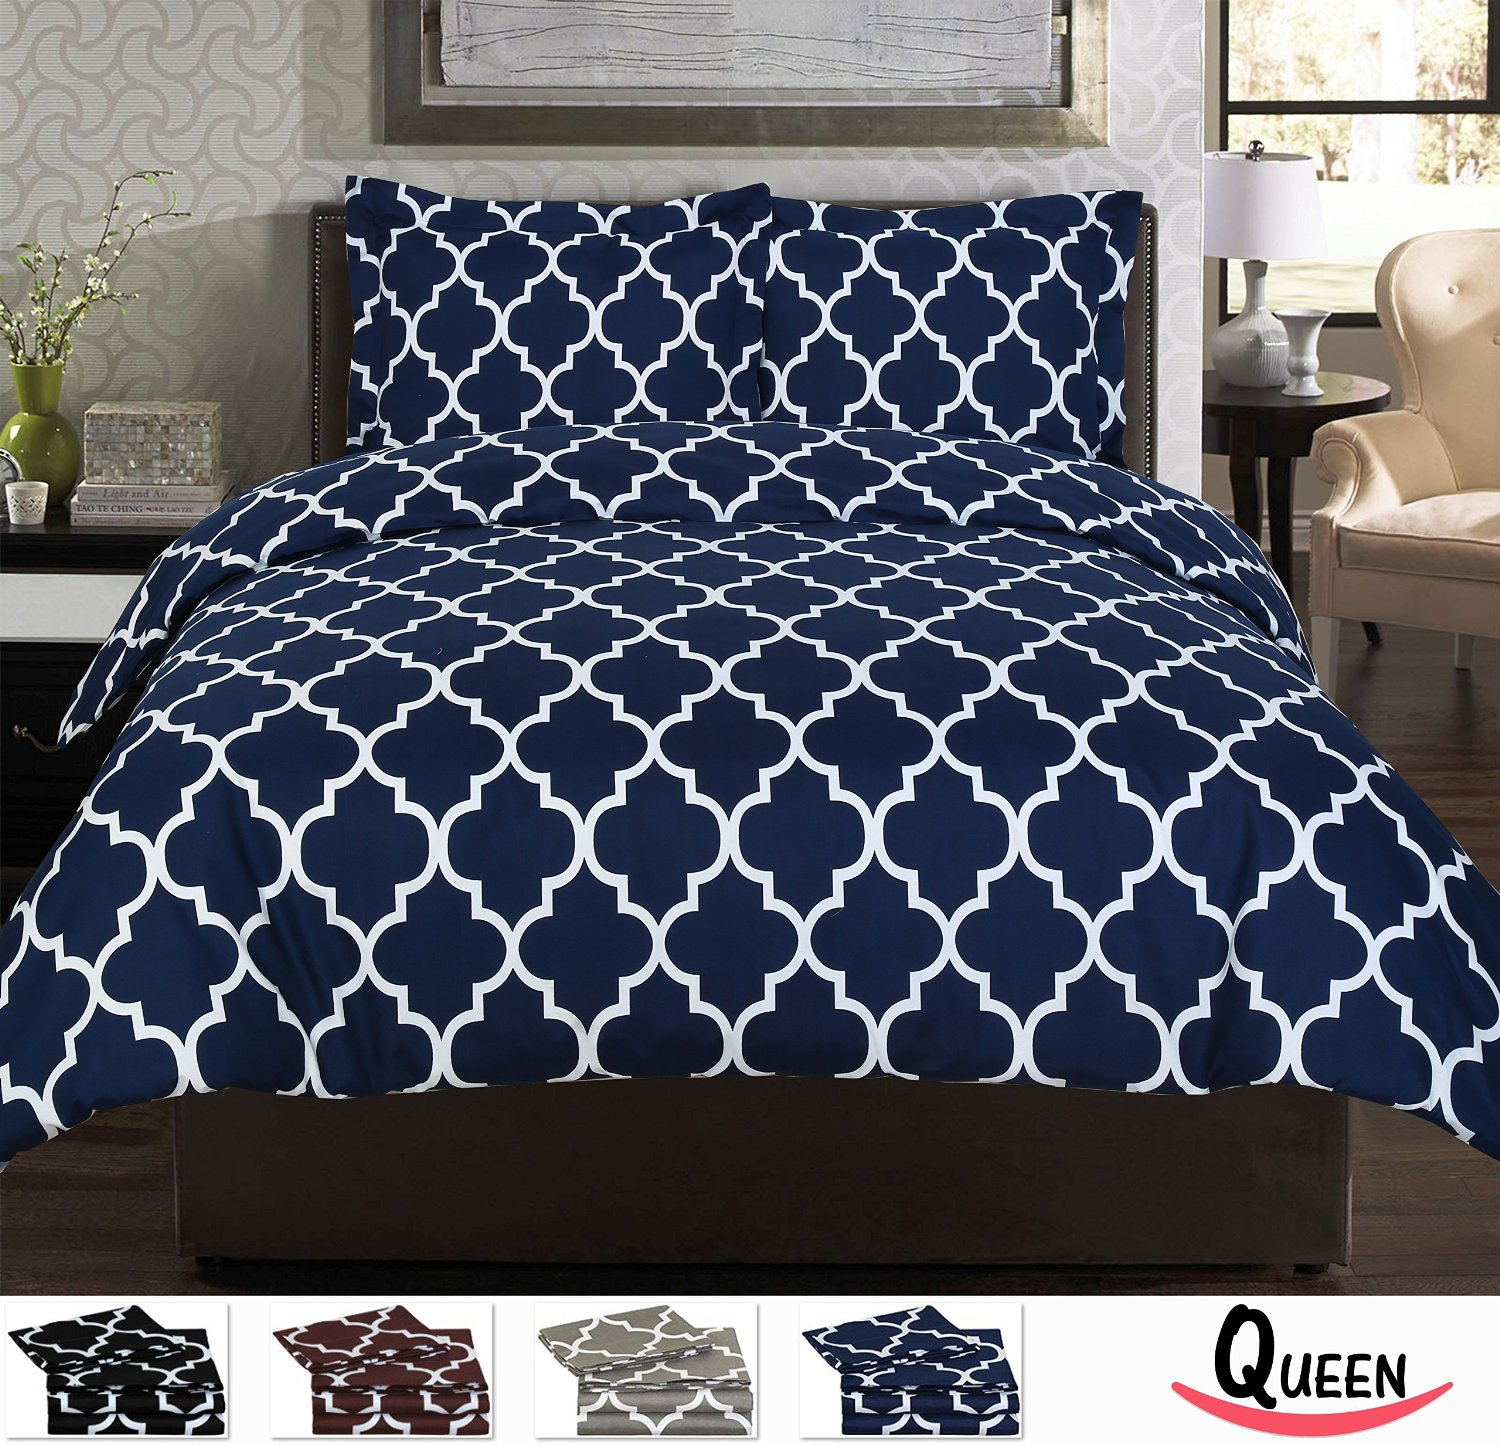 Organic Duvet Covers Queen | Black Queen Duvet Cover | Queen Duvet Covers